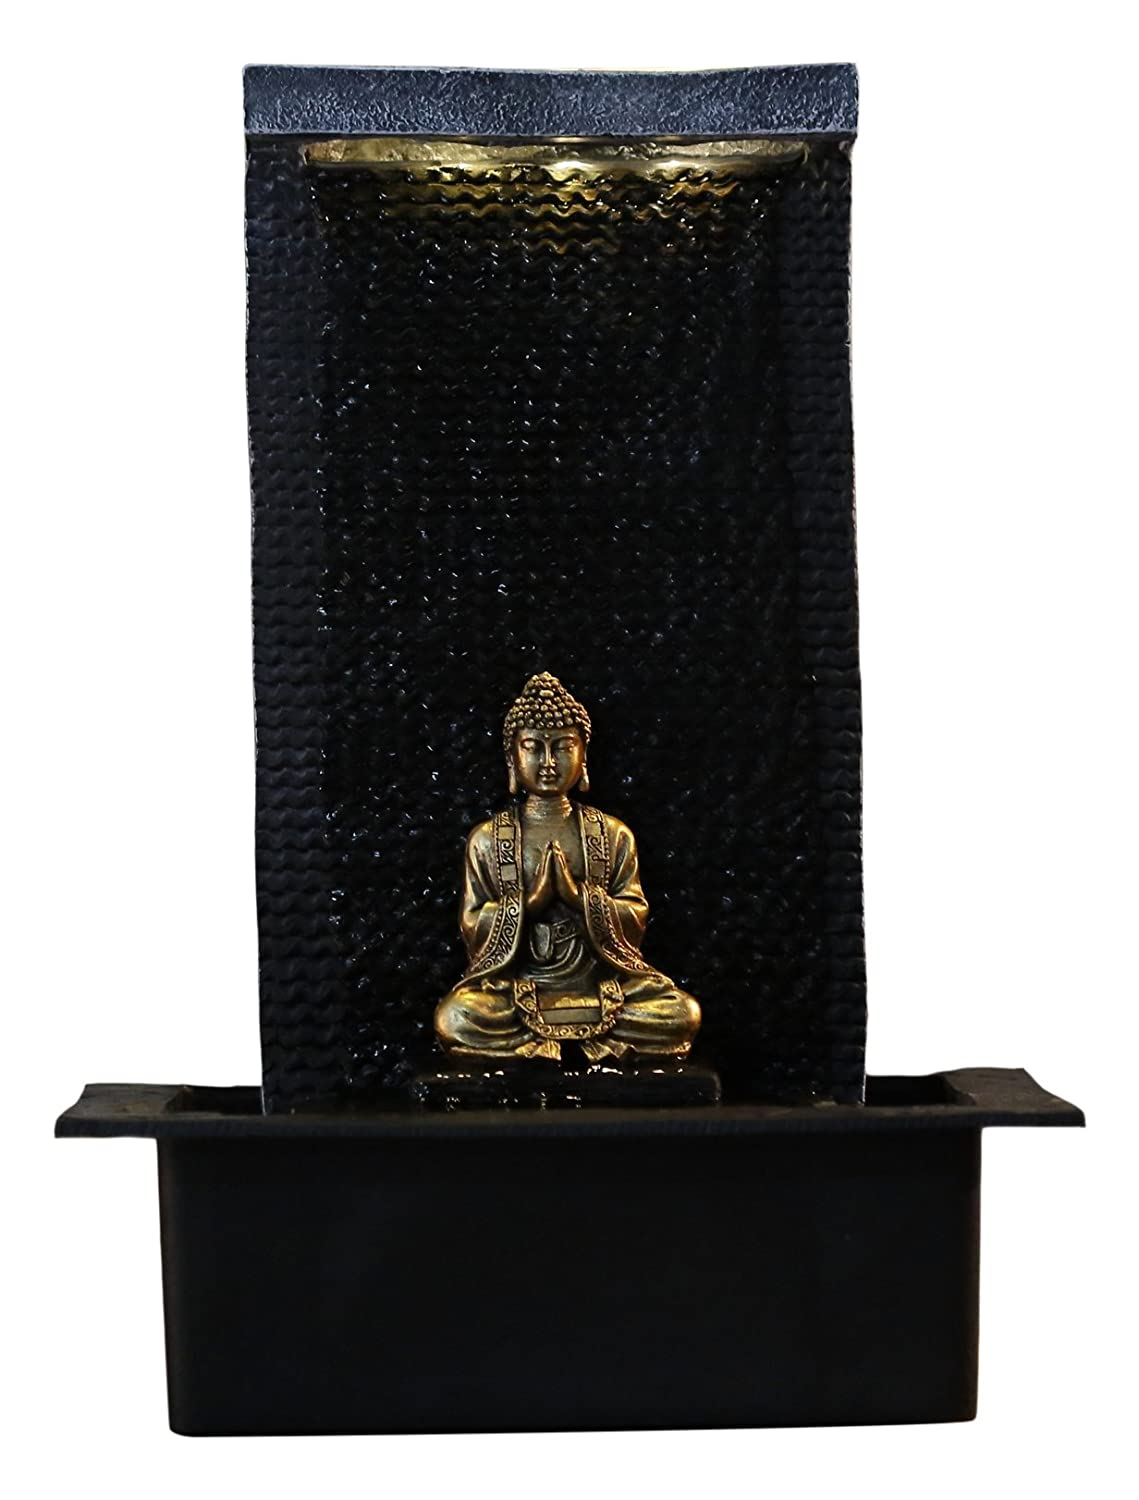 Zen Light ZENITUDE Fontana in poliresina, Dimensioni: 31 x 31 x 42 cm, Colore: Nero Zen' Light